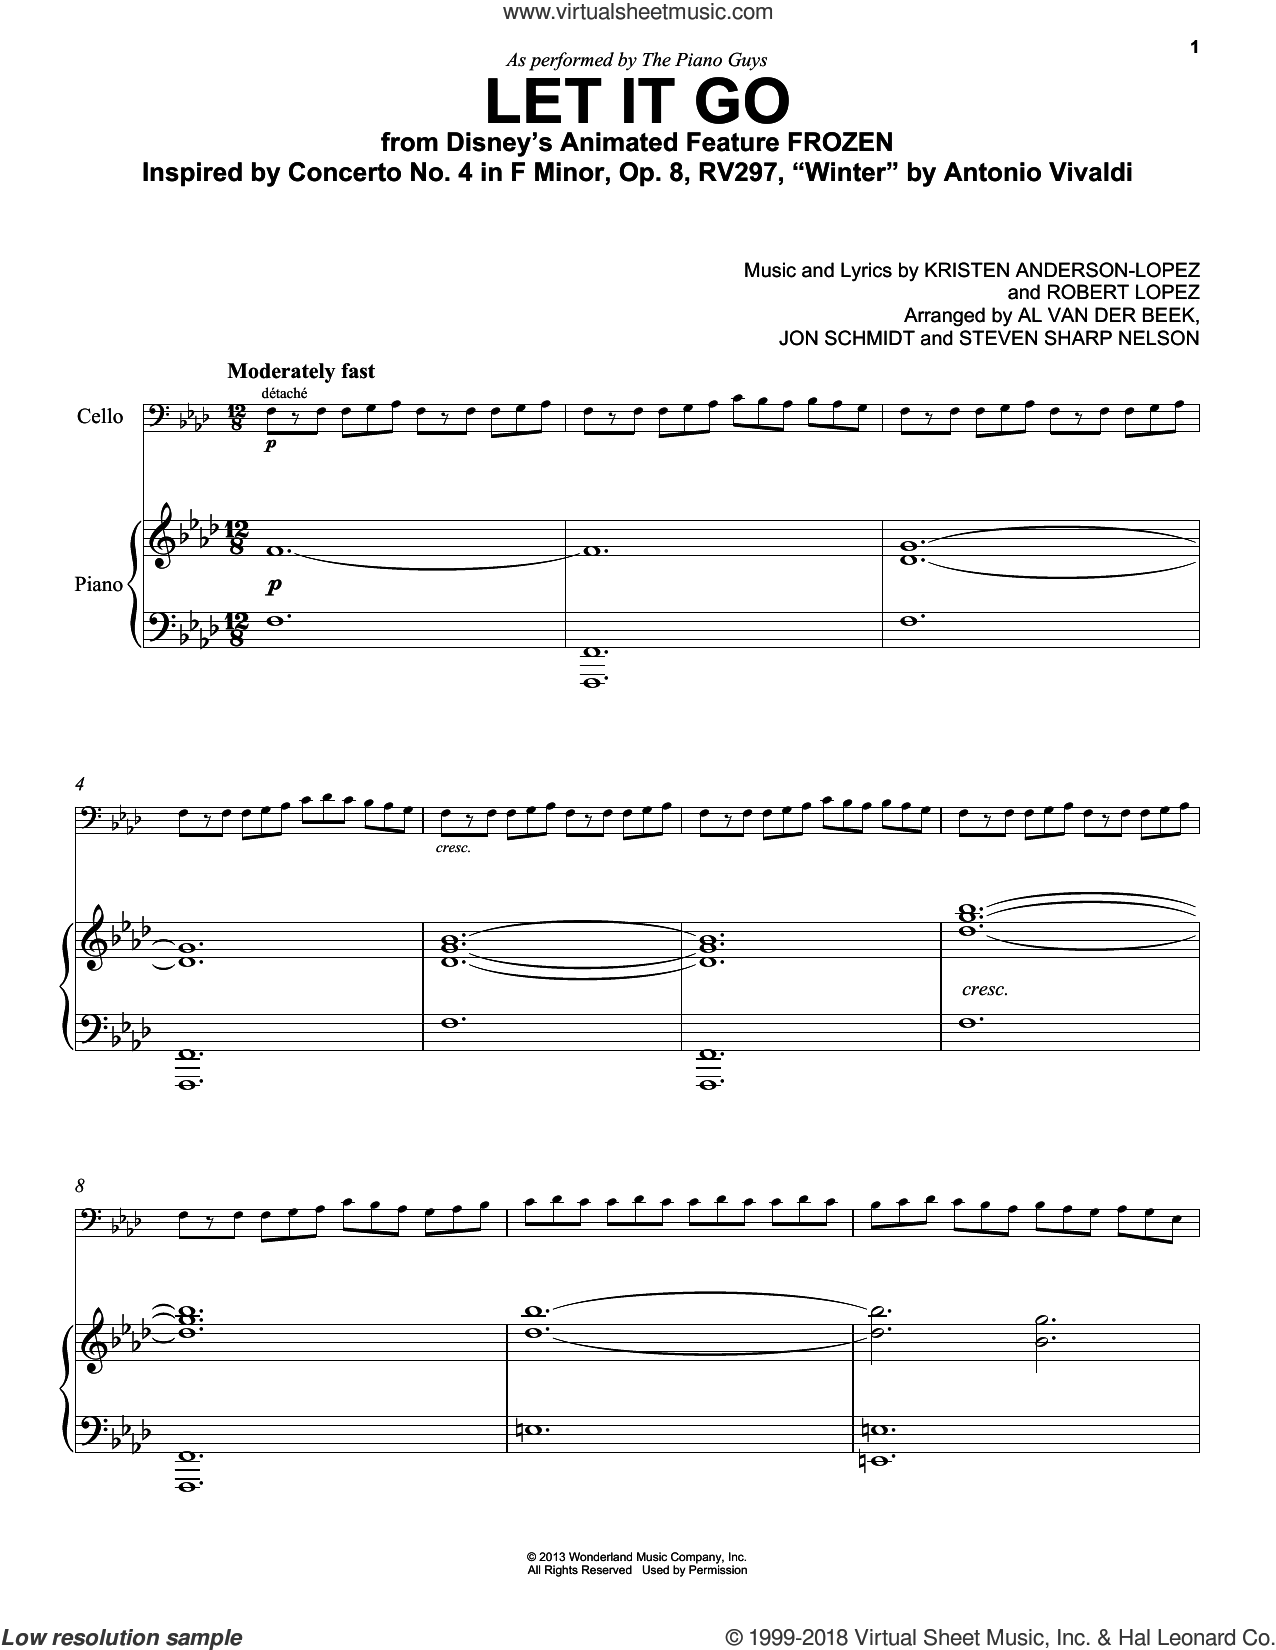 Let It Go (from Frozen) sheet music for cello and piano by The Piano Guys, Idina Menzel, Kristen Anderson-Lopez and Robert Lopez, intermediate skill level